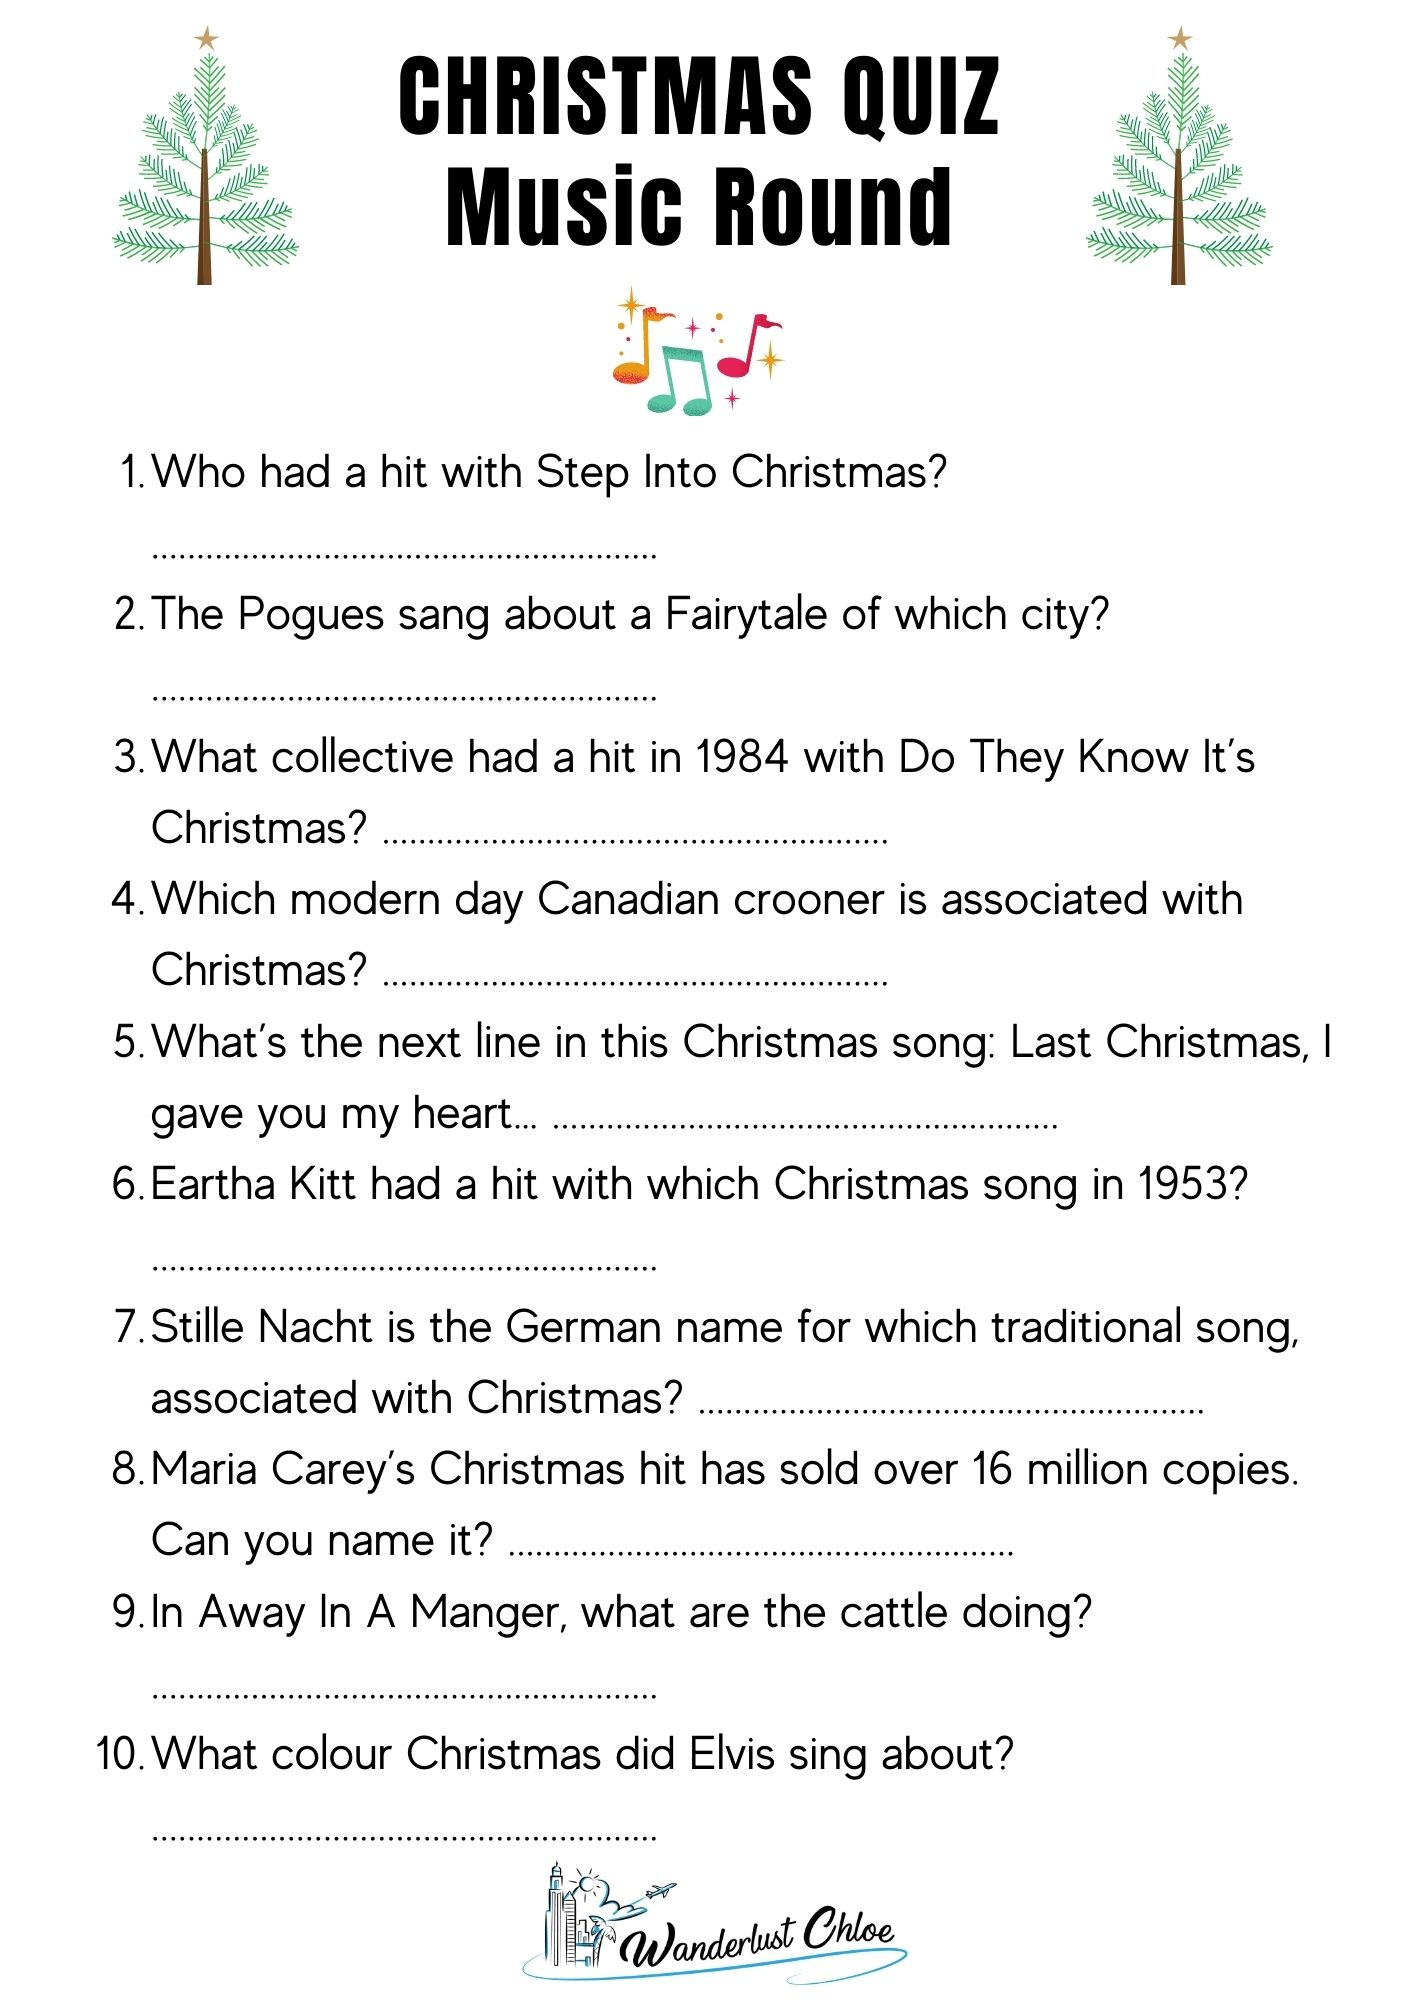 Printable Christmas Quiz Questions - Music Round